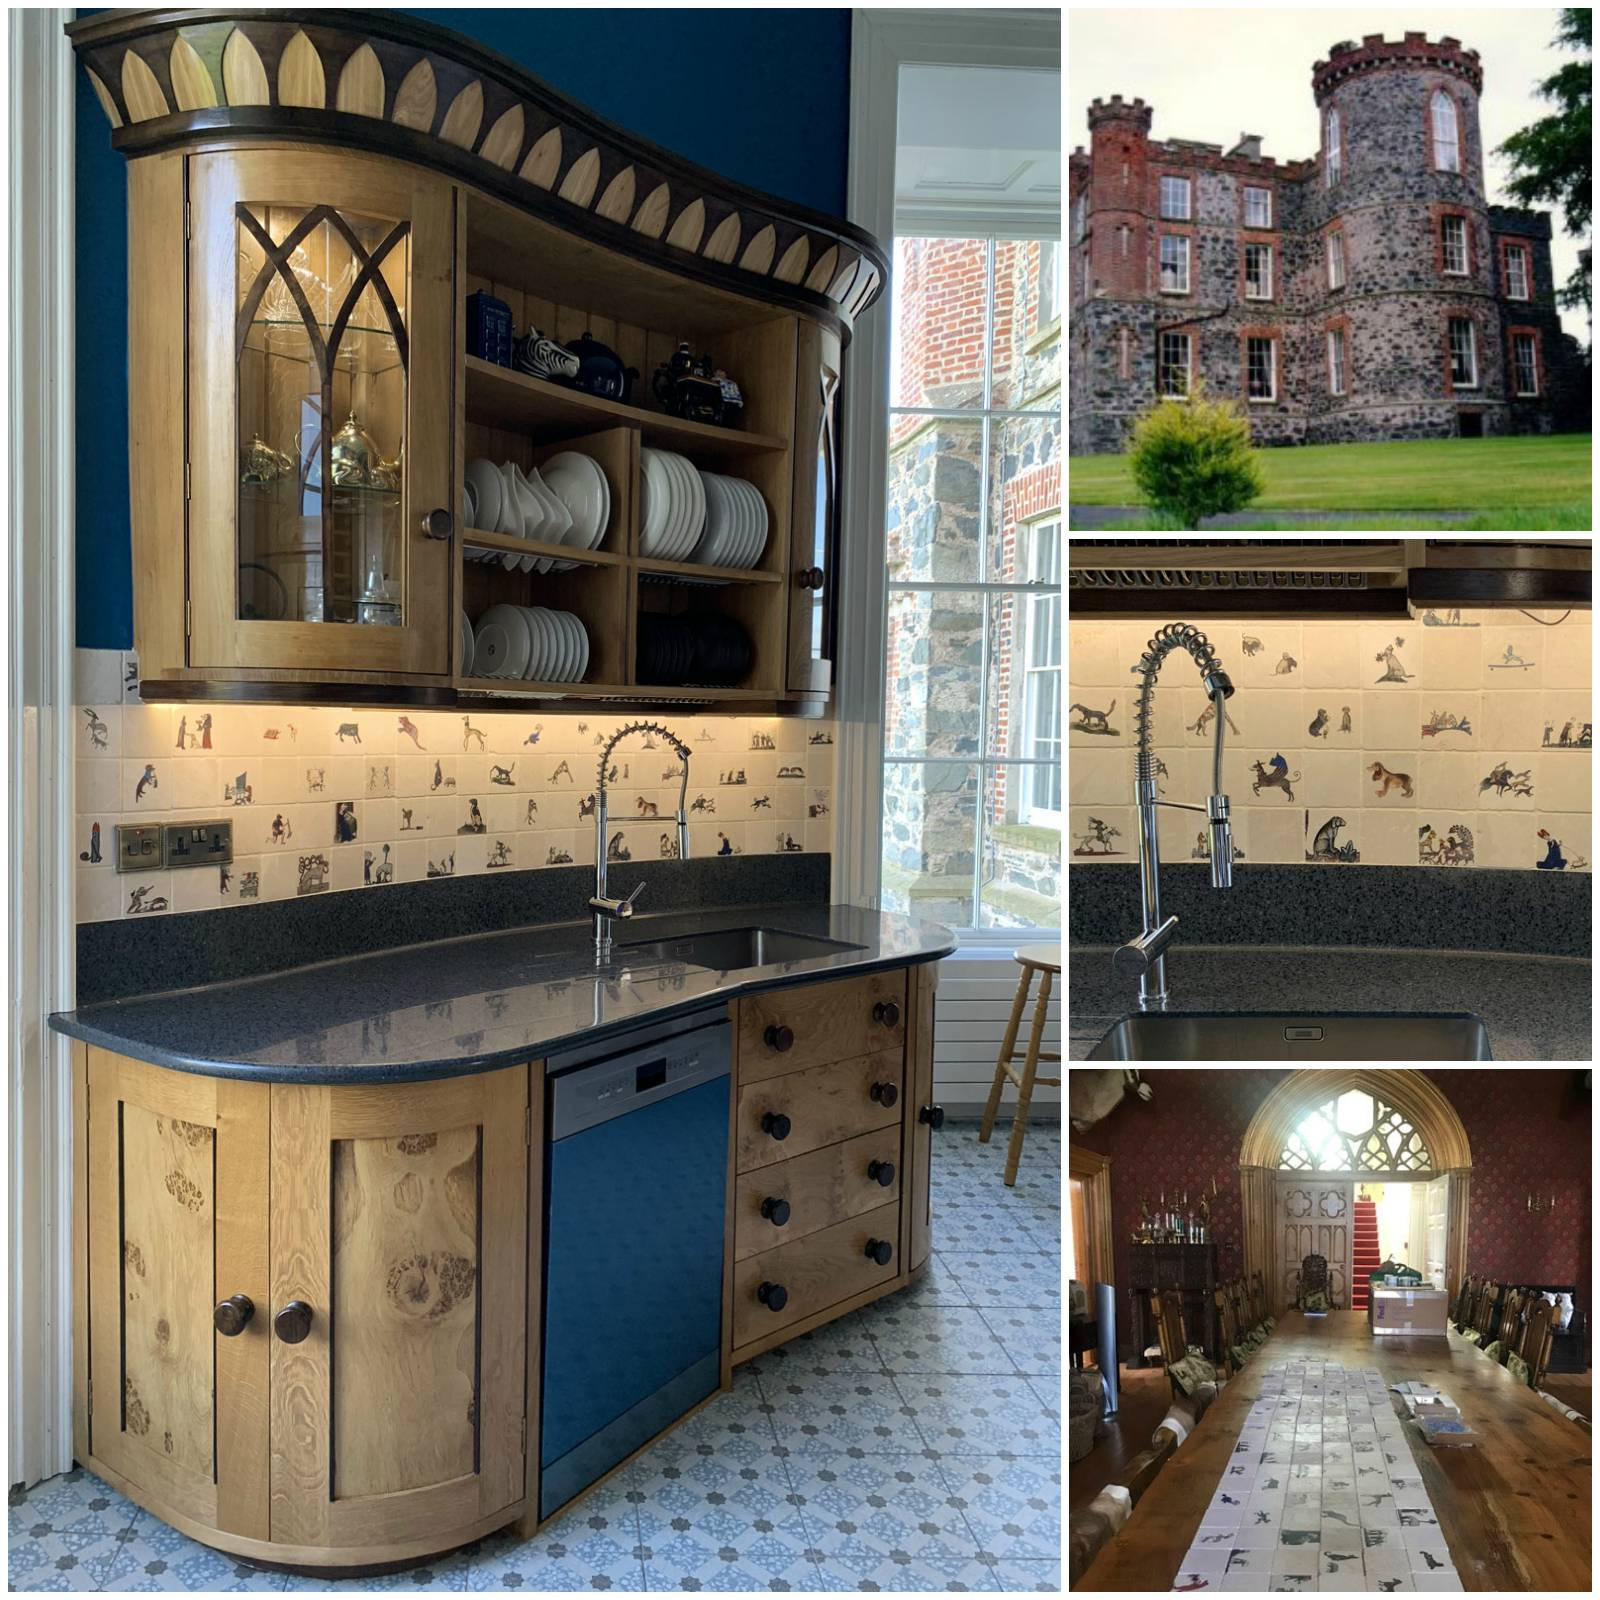 Medieval dogs installed in tower kitchen at Carrowdore Castle, Northern Ireland